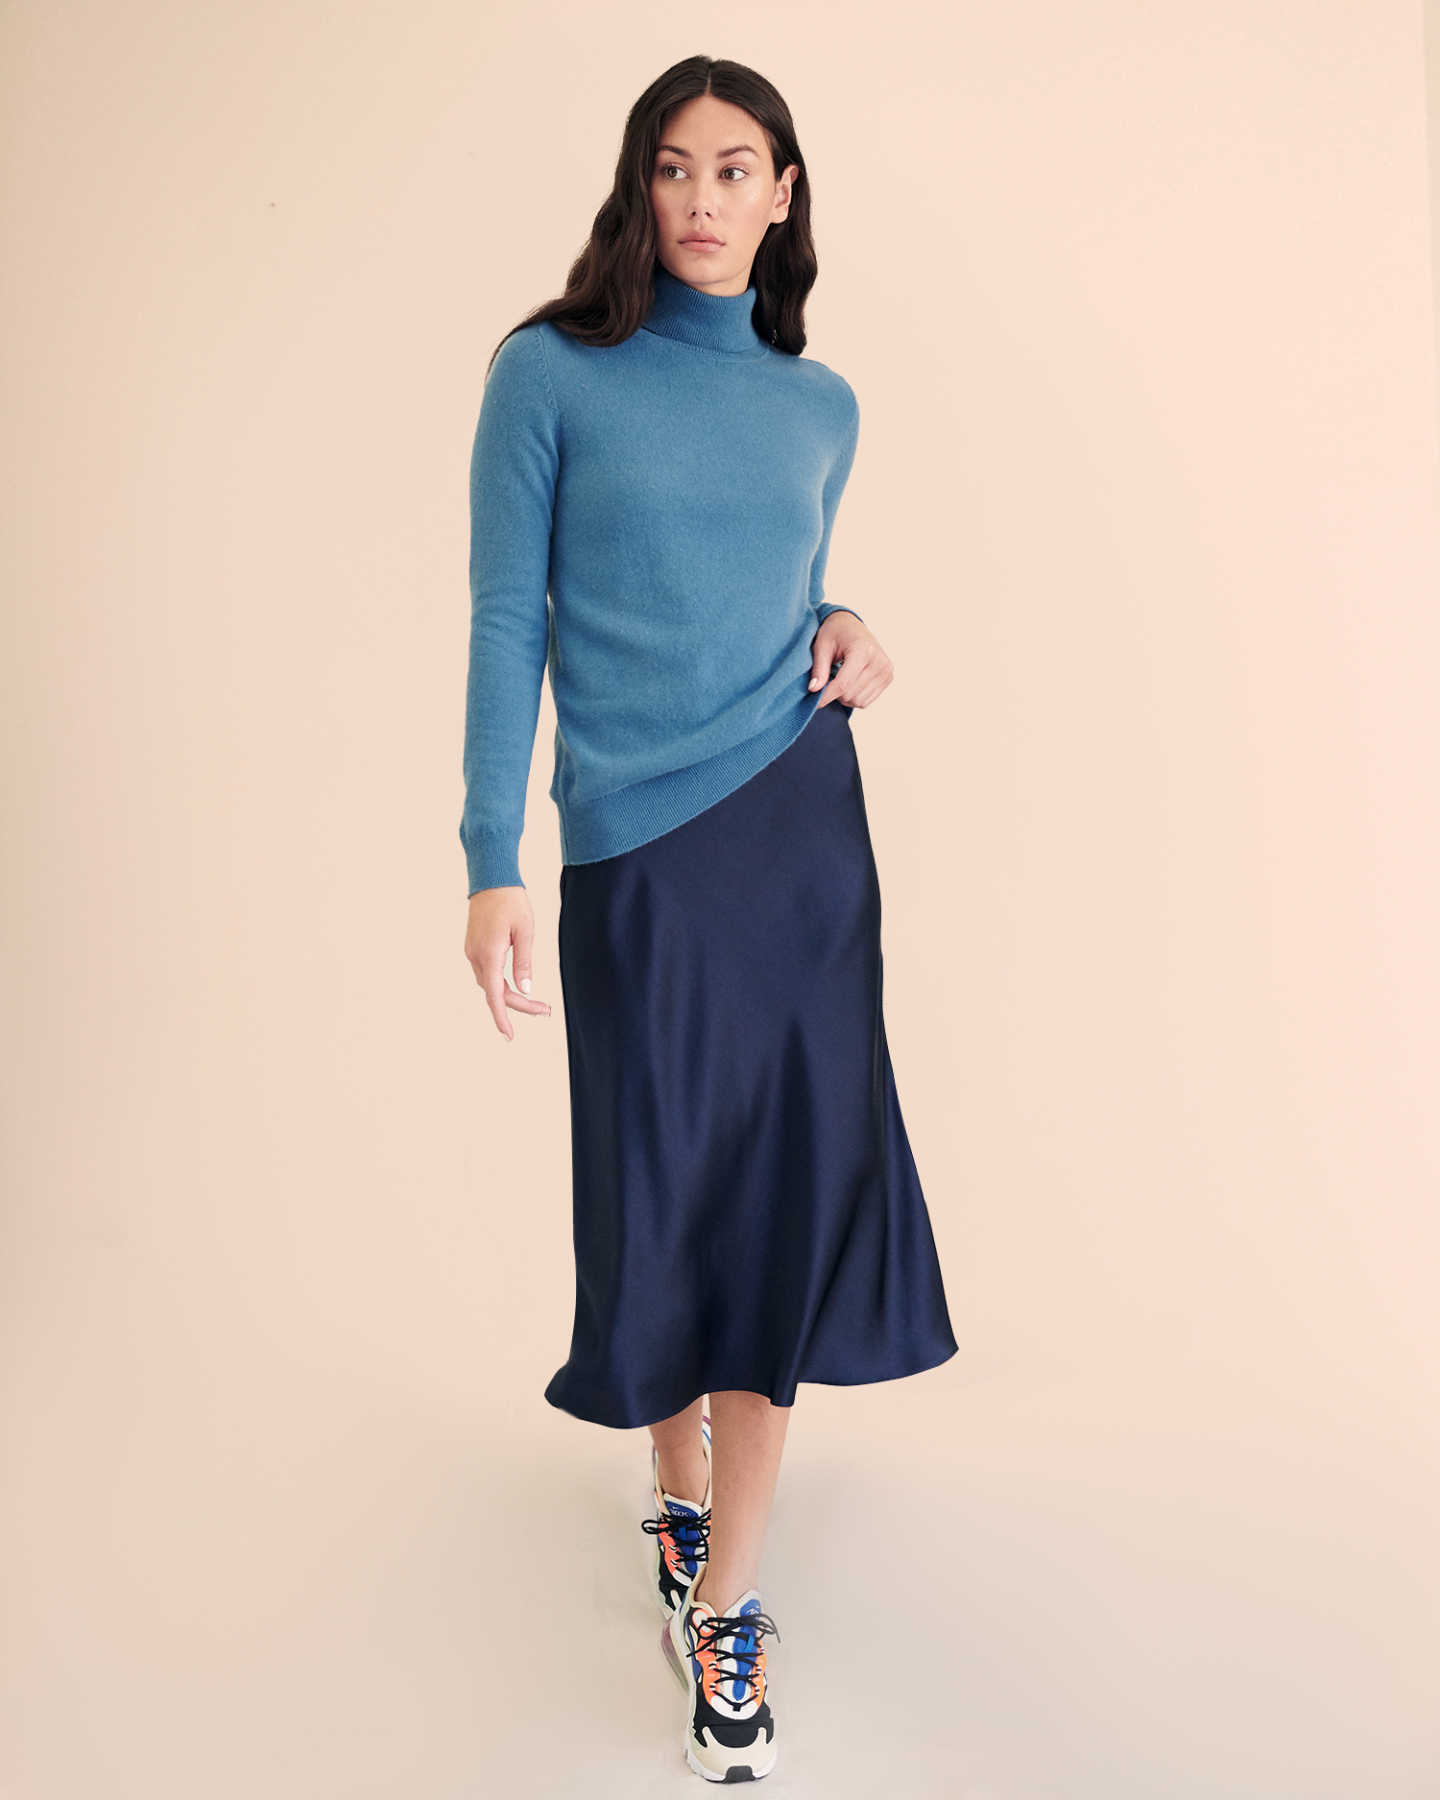 Woman wearing navy silk skirt